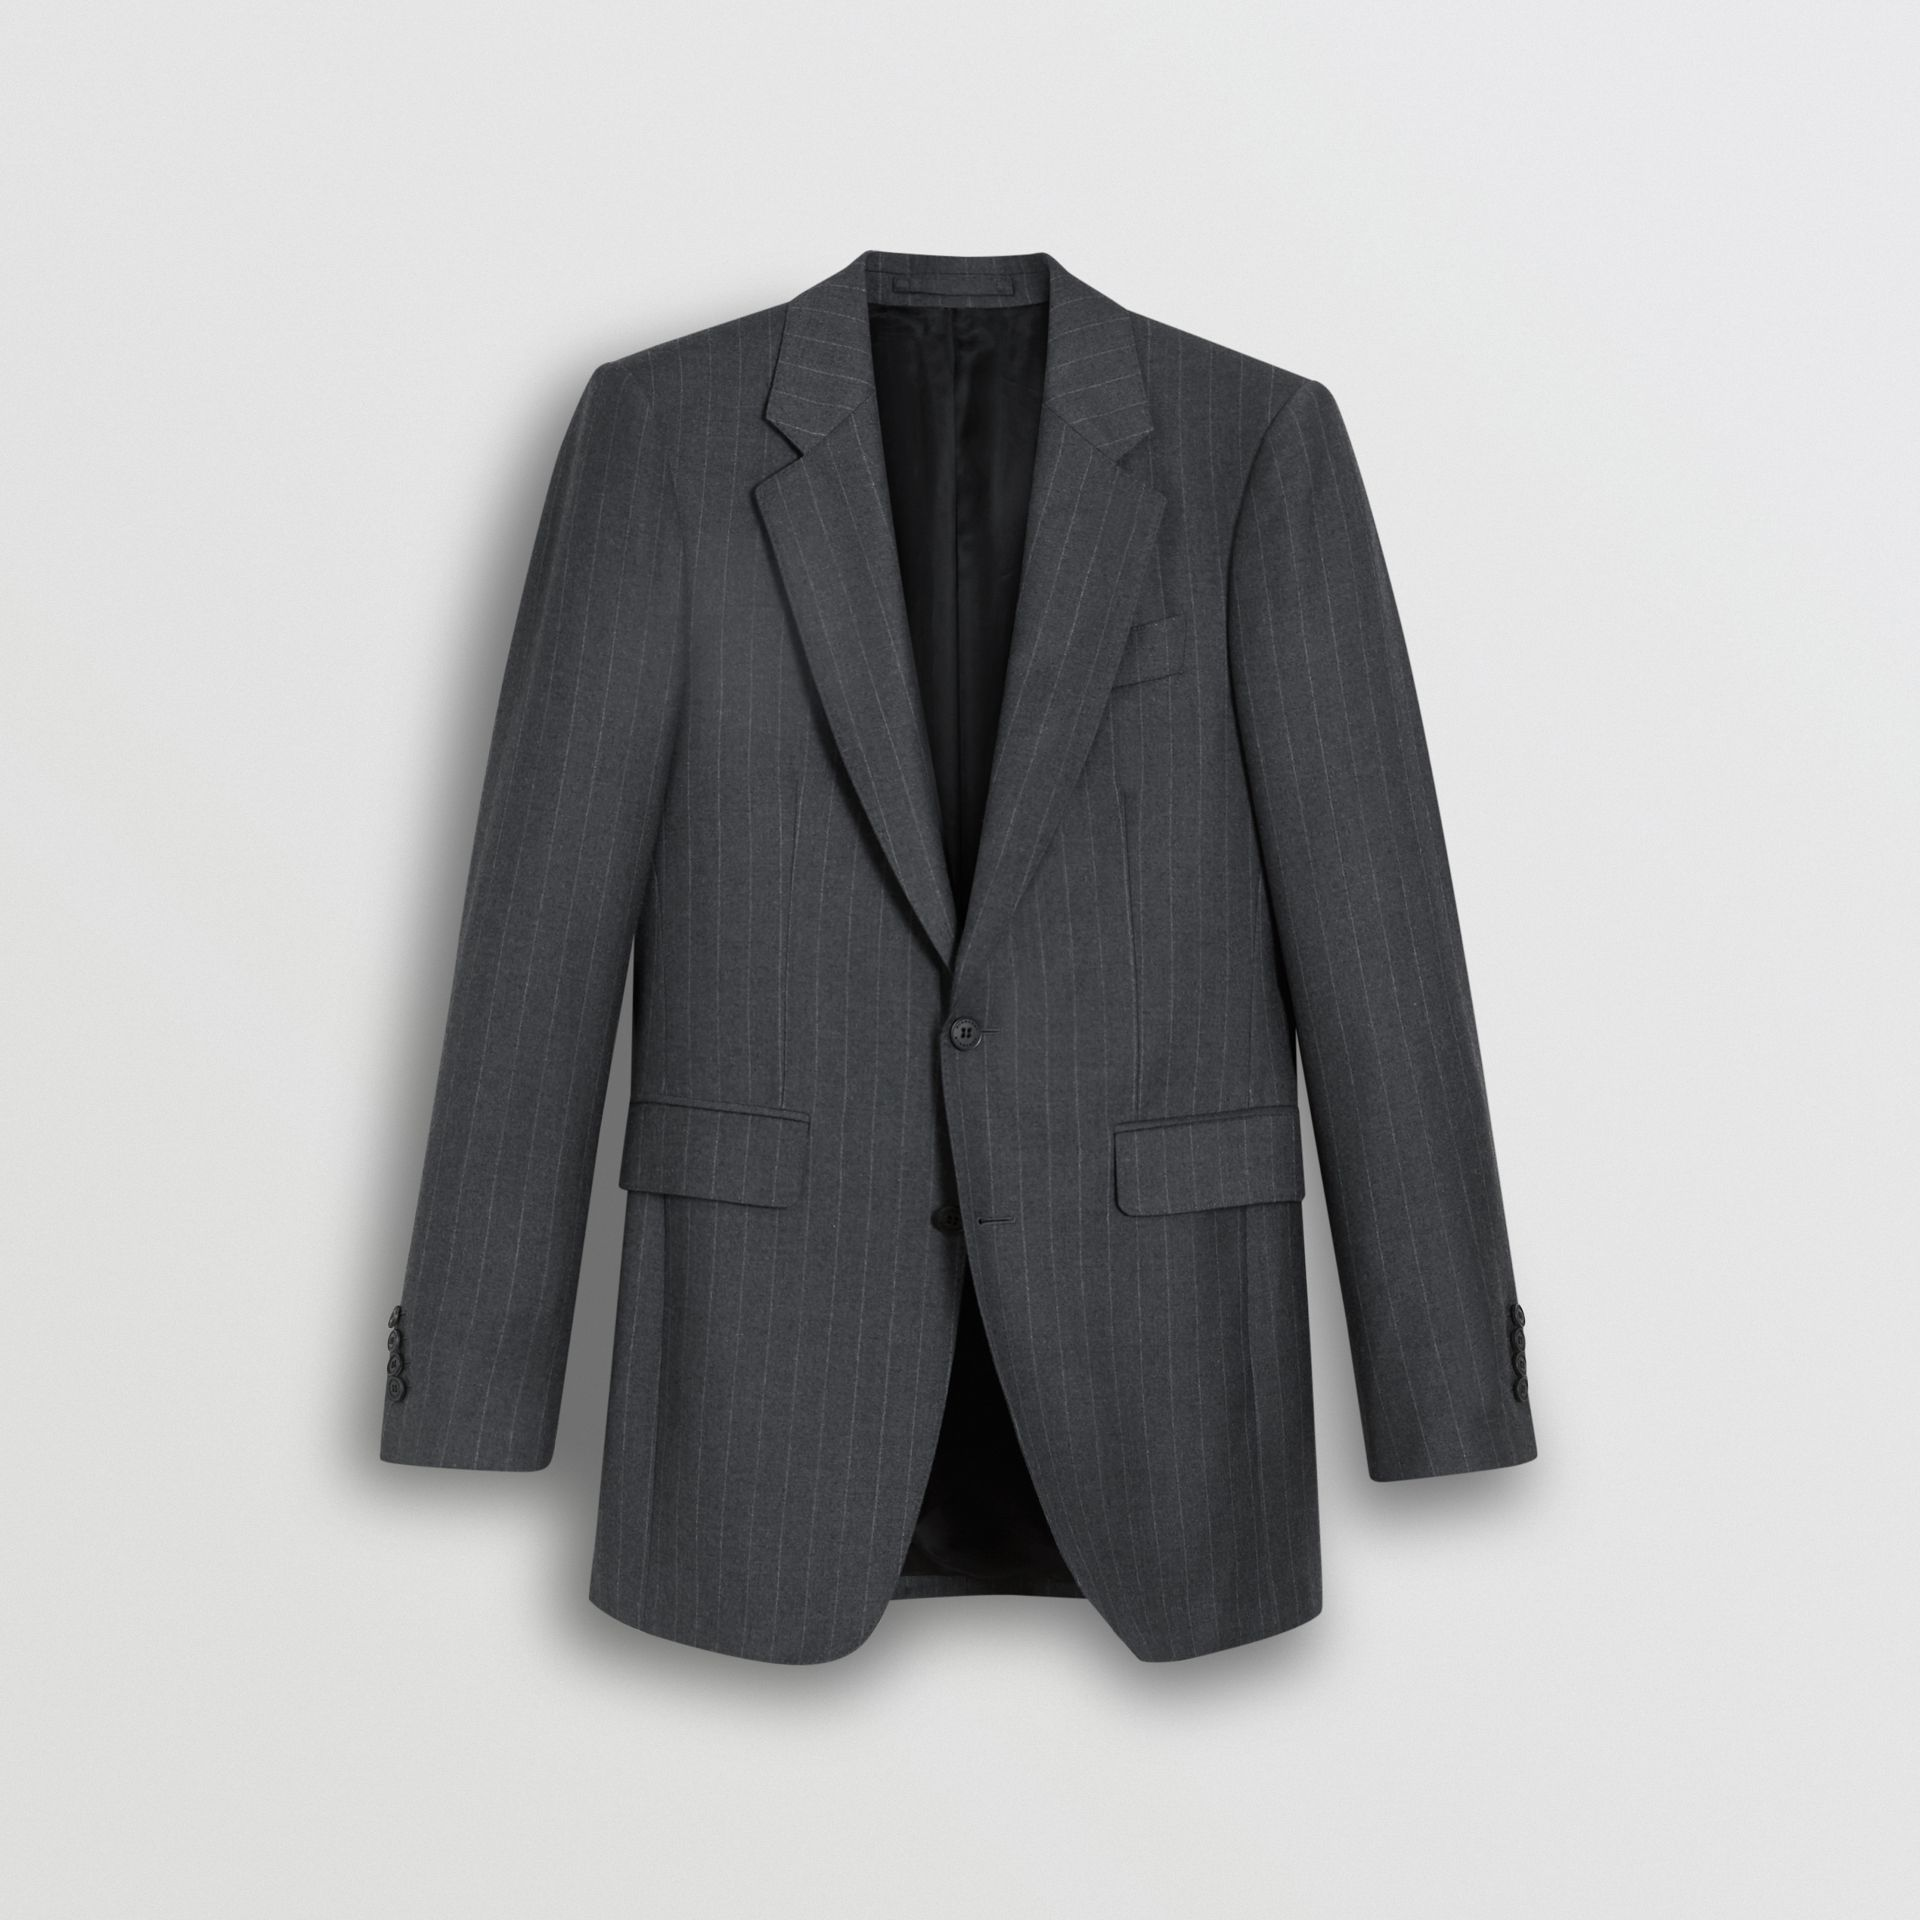 Slim Fit Pinstriped Wool Cashmere Suit in Mid Grey - Men | Burberry Australia - gallery image 3